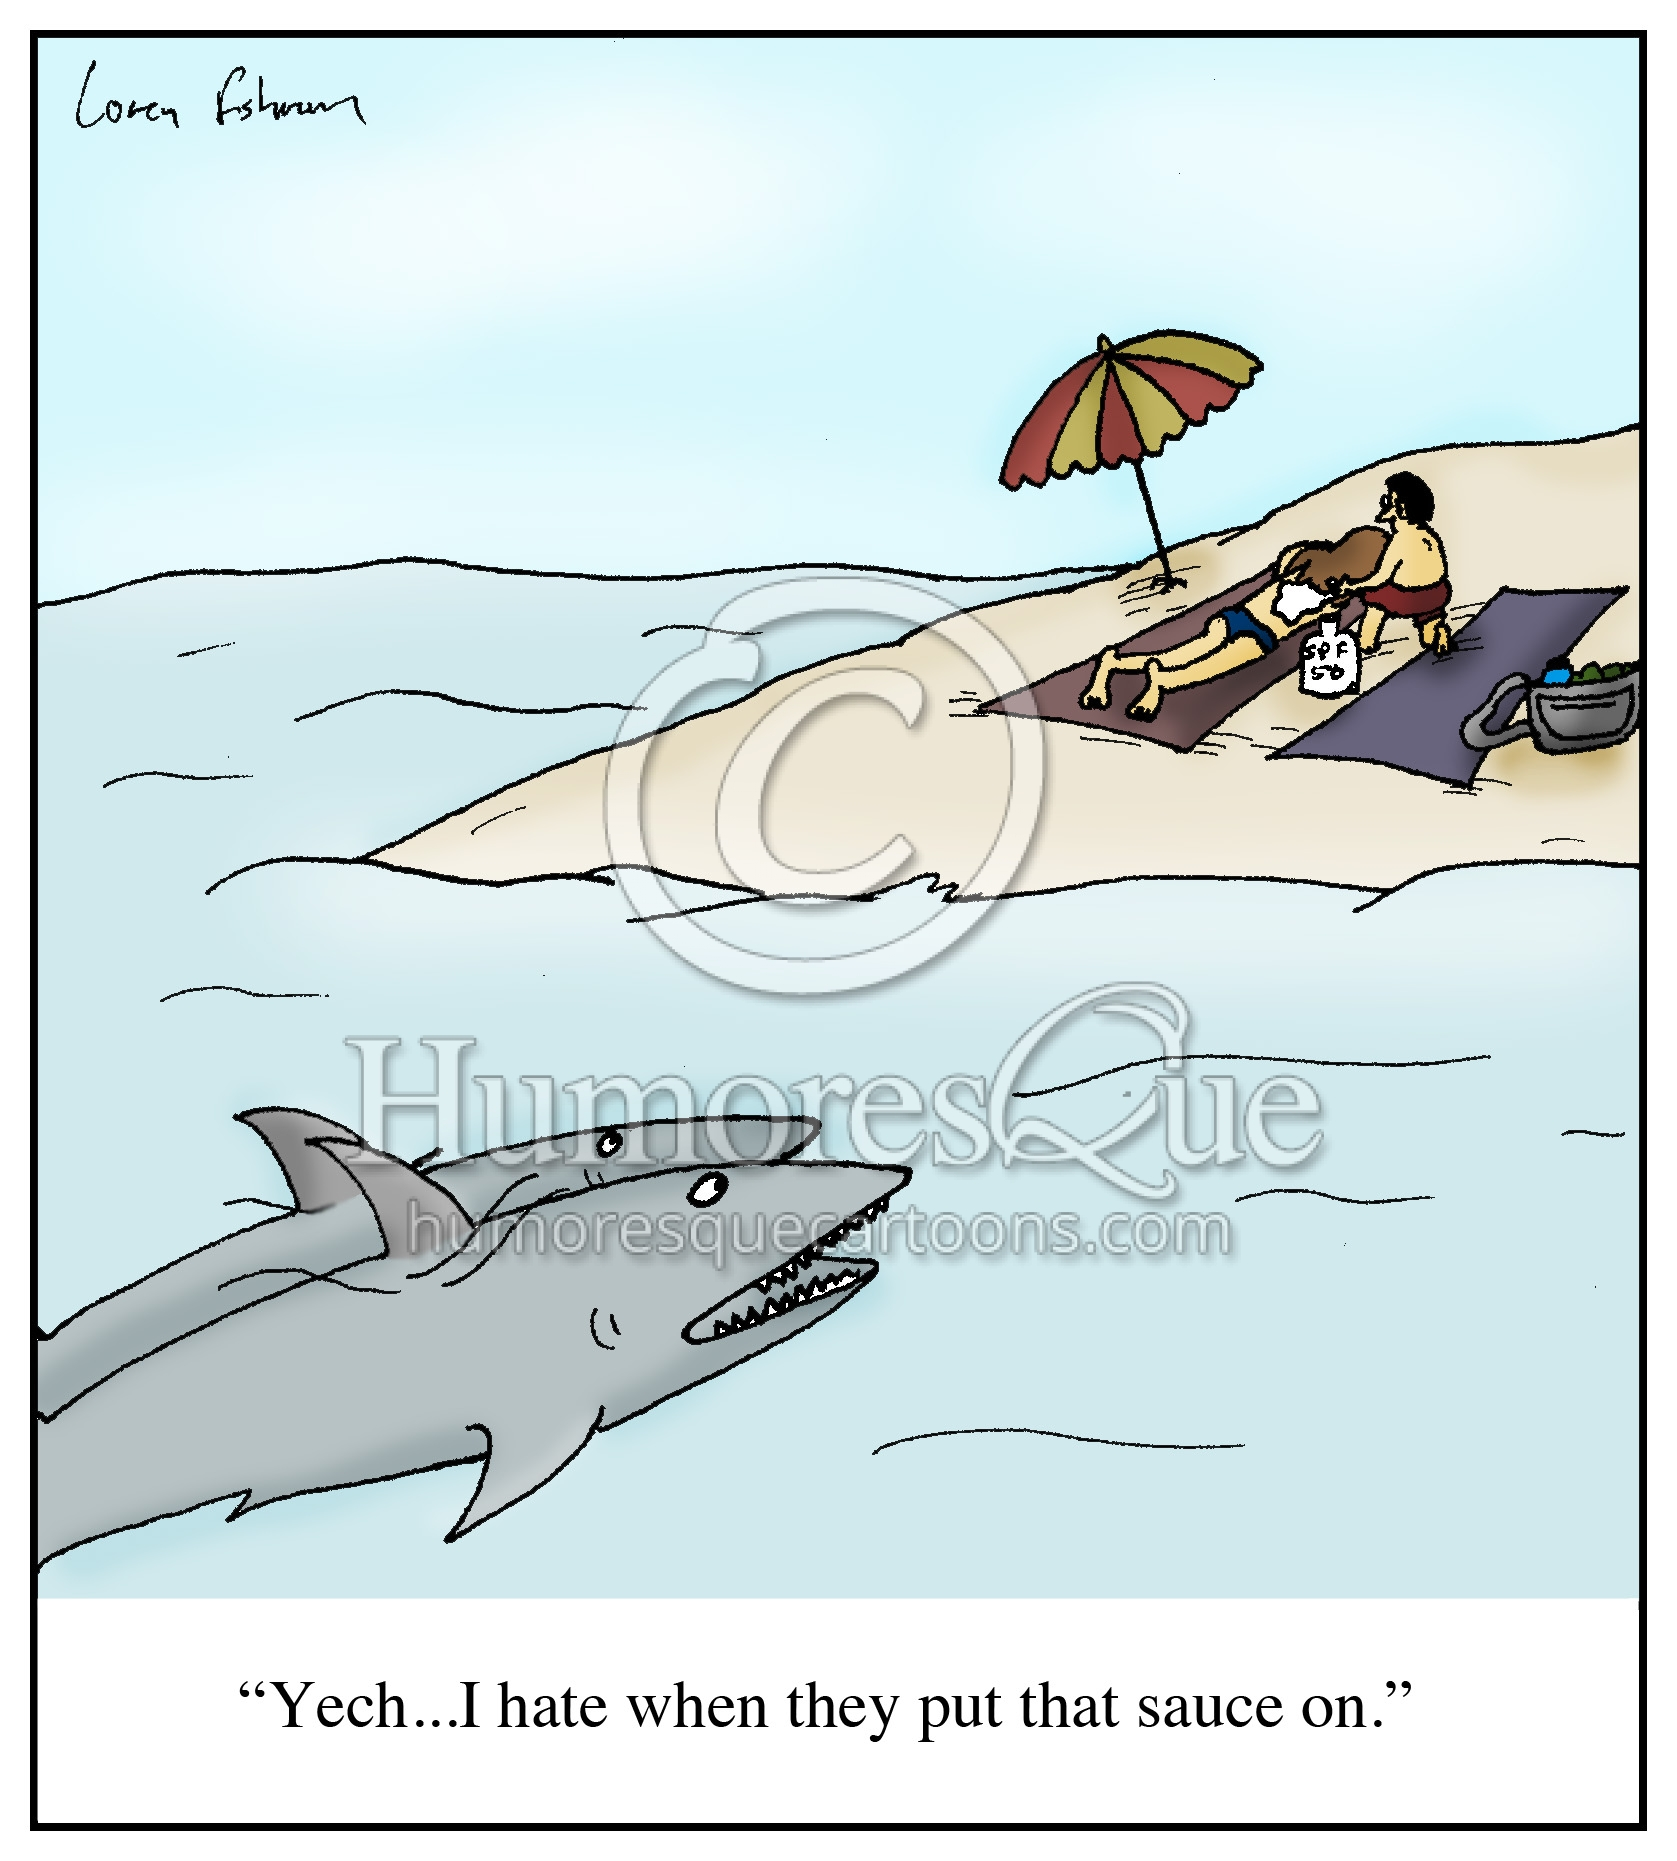 shark sunscreen putting sauce on cartoon